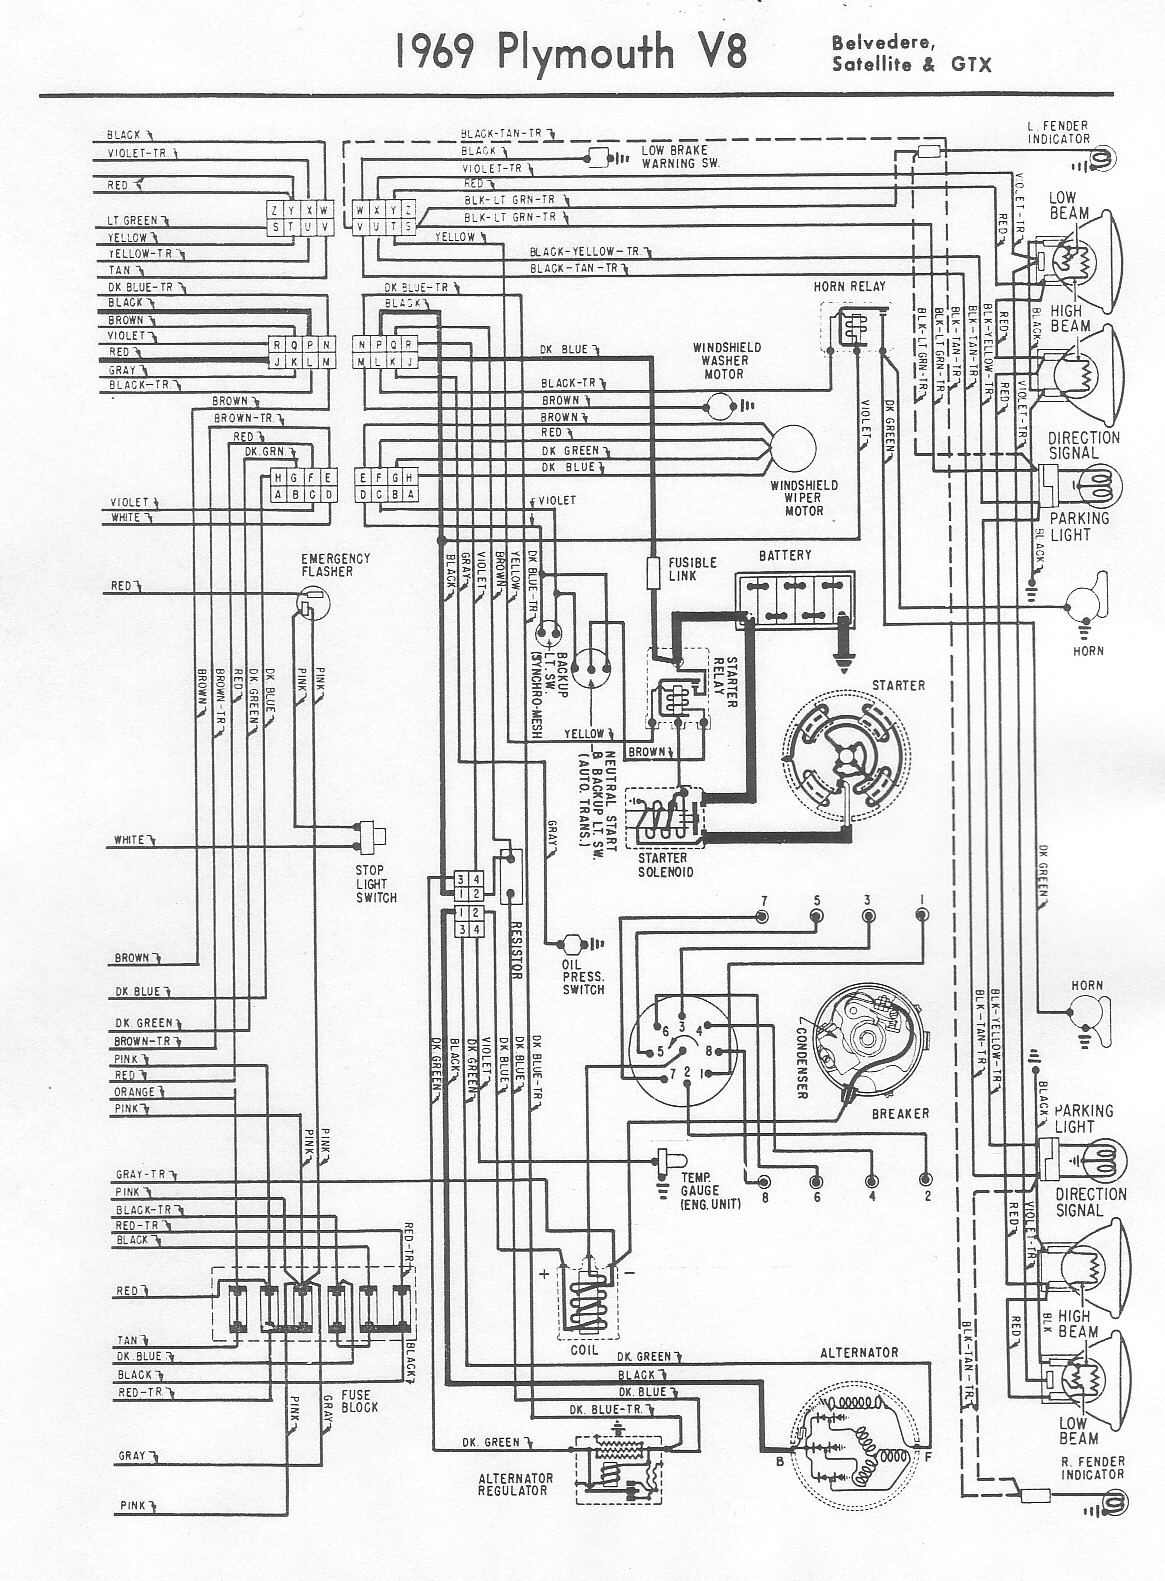 1972 Plymouth Roadrunner Wiring Schematic additionally Toro Recycler Fuel Filter likewise 1971 Fender Telecaster 3 Way Wiring Diagram moreover Wiring Harness 2005 Dodge Caravan Sliding Door besides Honda Cb 350 Engine Diagram. on gtp cool wall 1971 1973 buick riviera